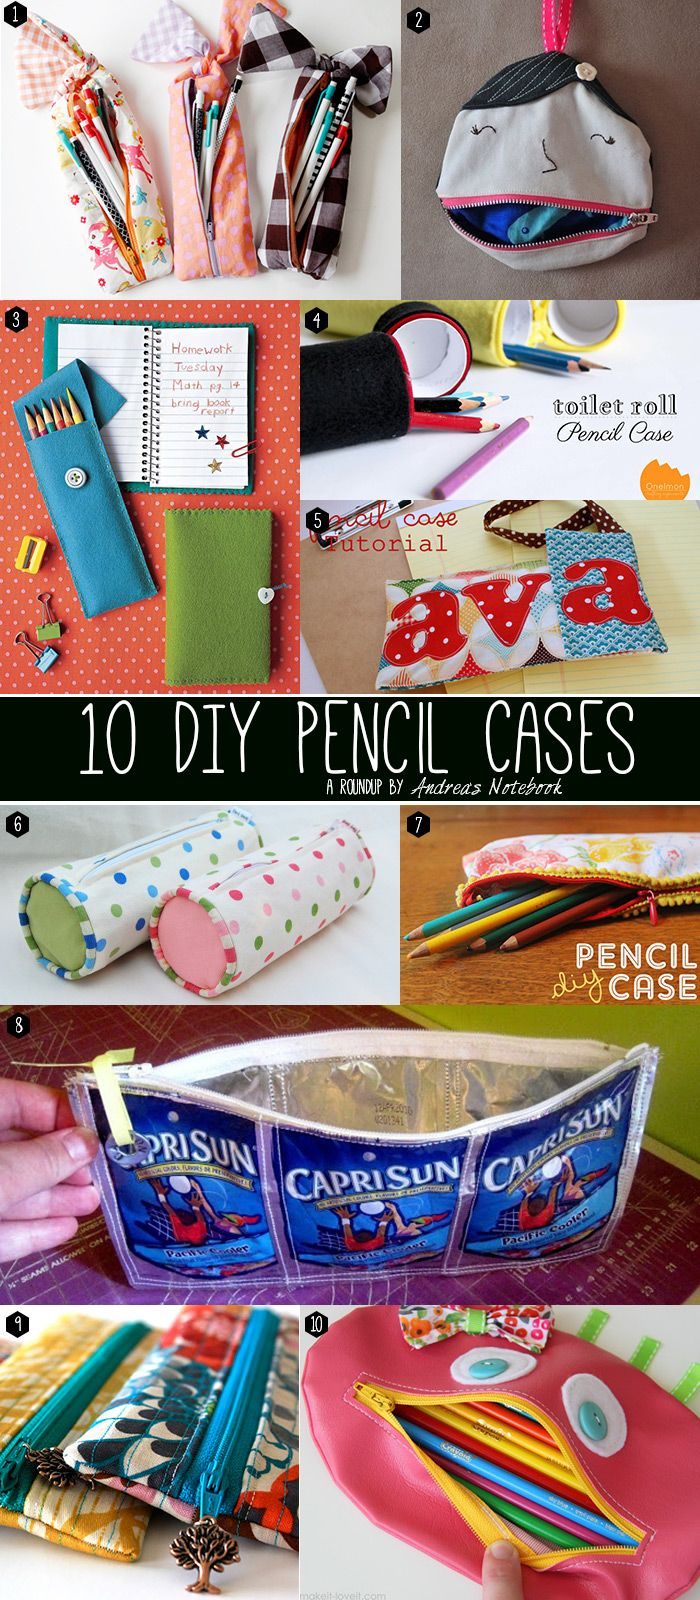 Katherine Unique - fashion and lifestyle: Back To School - more than 40 DIY ideas for Pencil Case